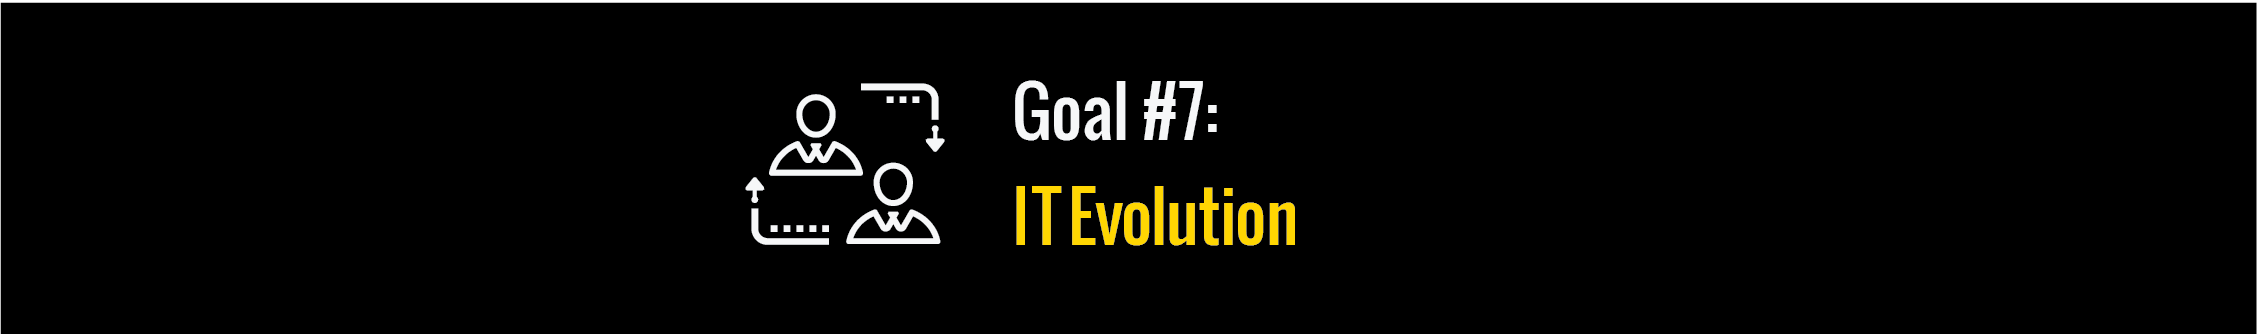 Goal #7: IT Evolution